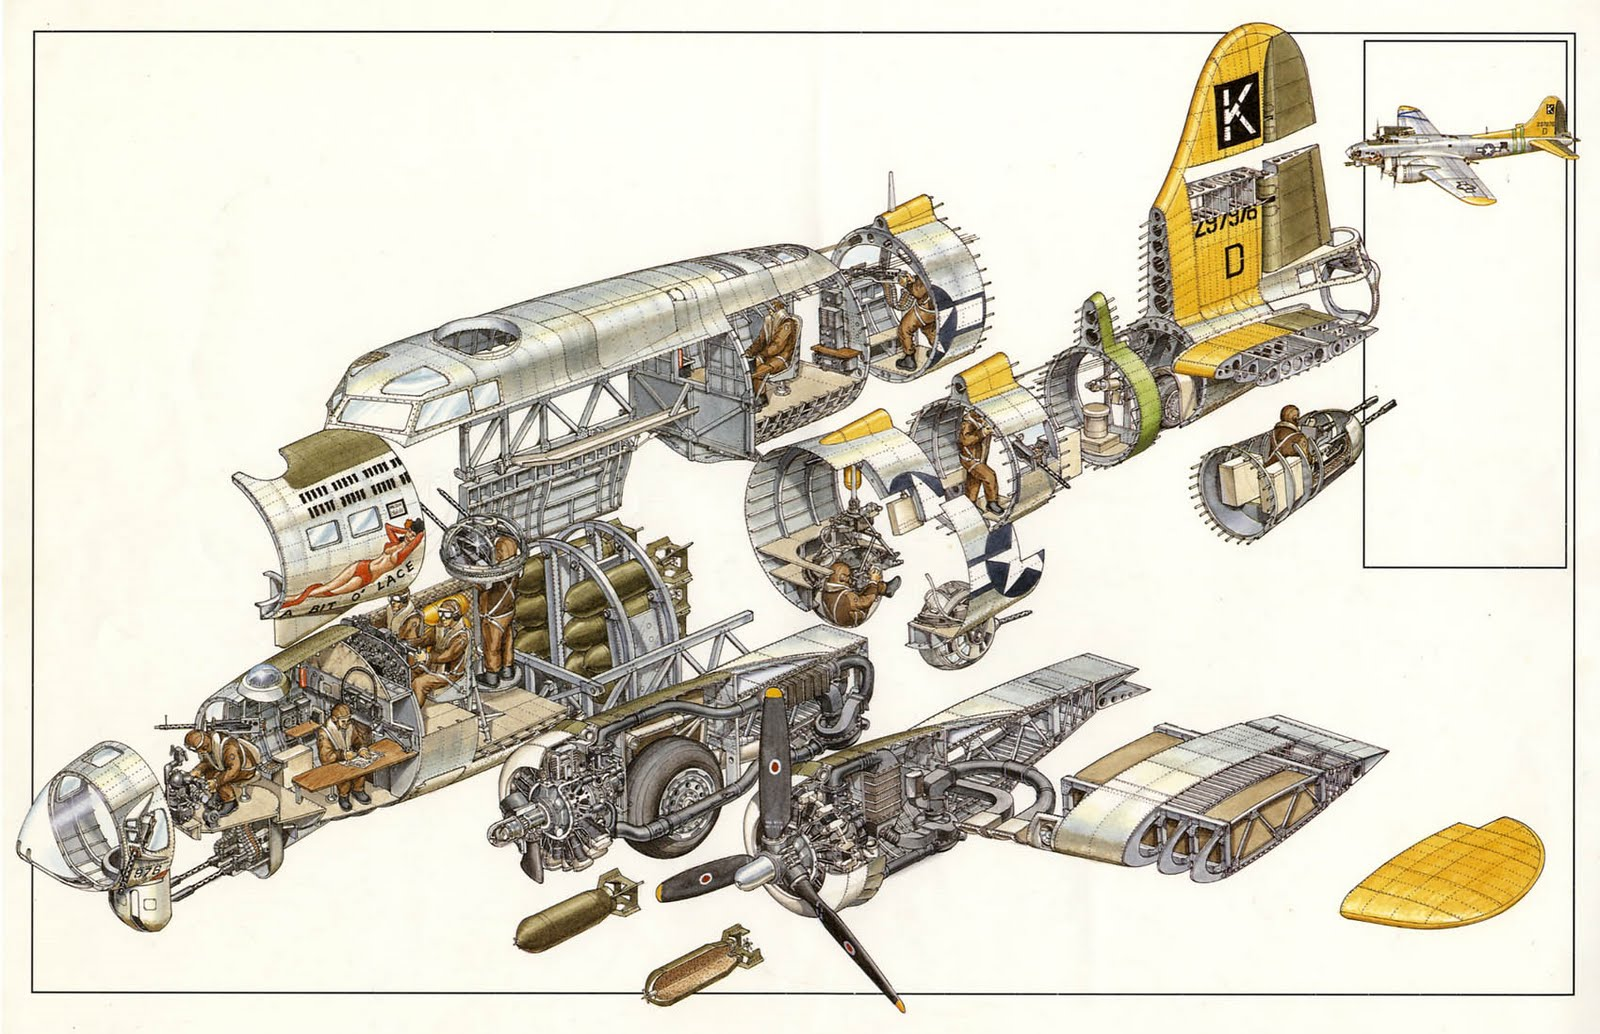 1945 liberator aircraft cutaway and planes rh pinterest com B-17 Bomber Specifications B -29 Bomber Engines